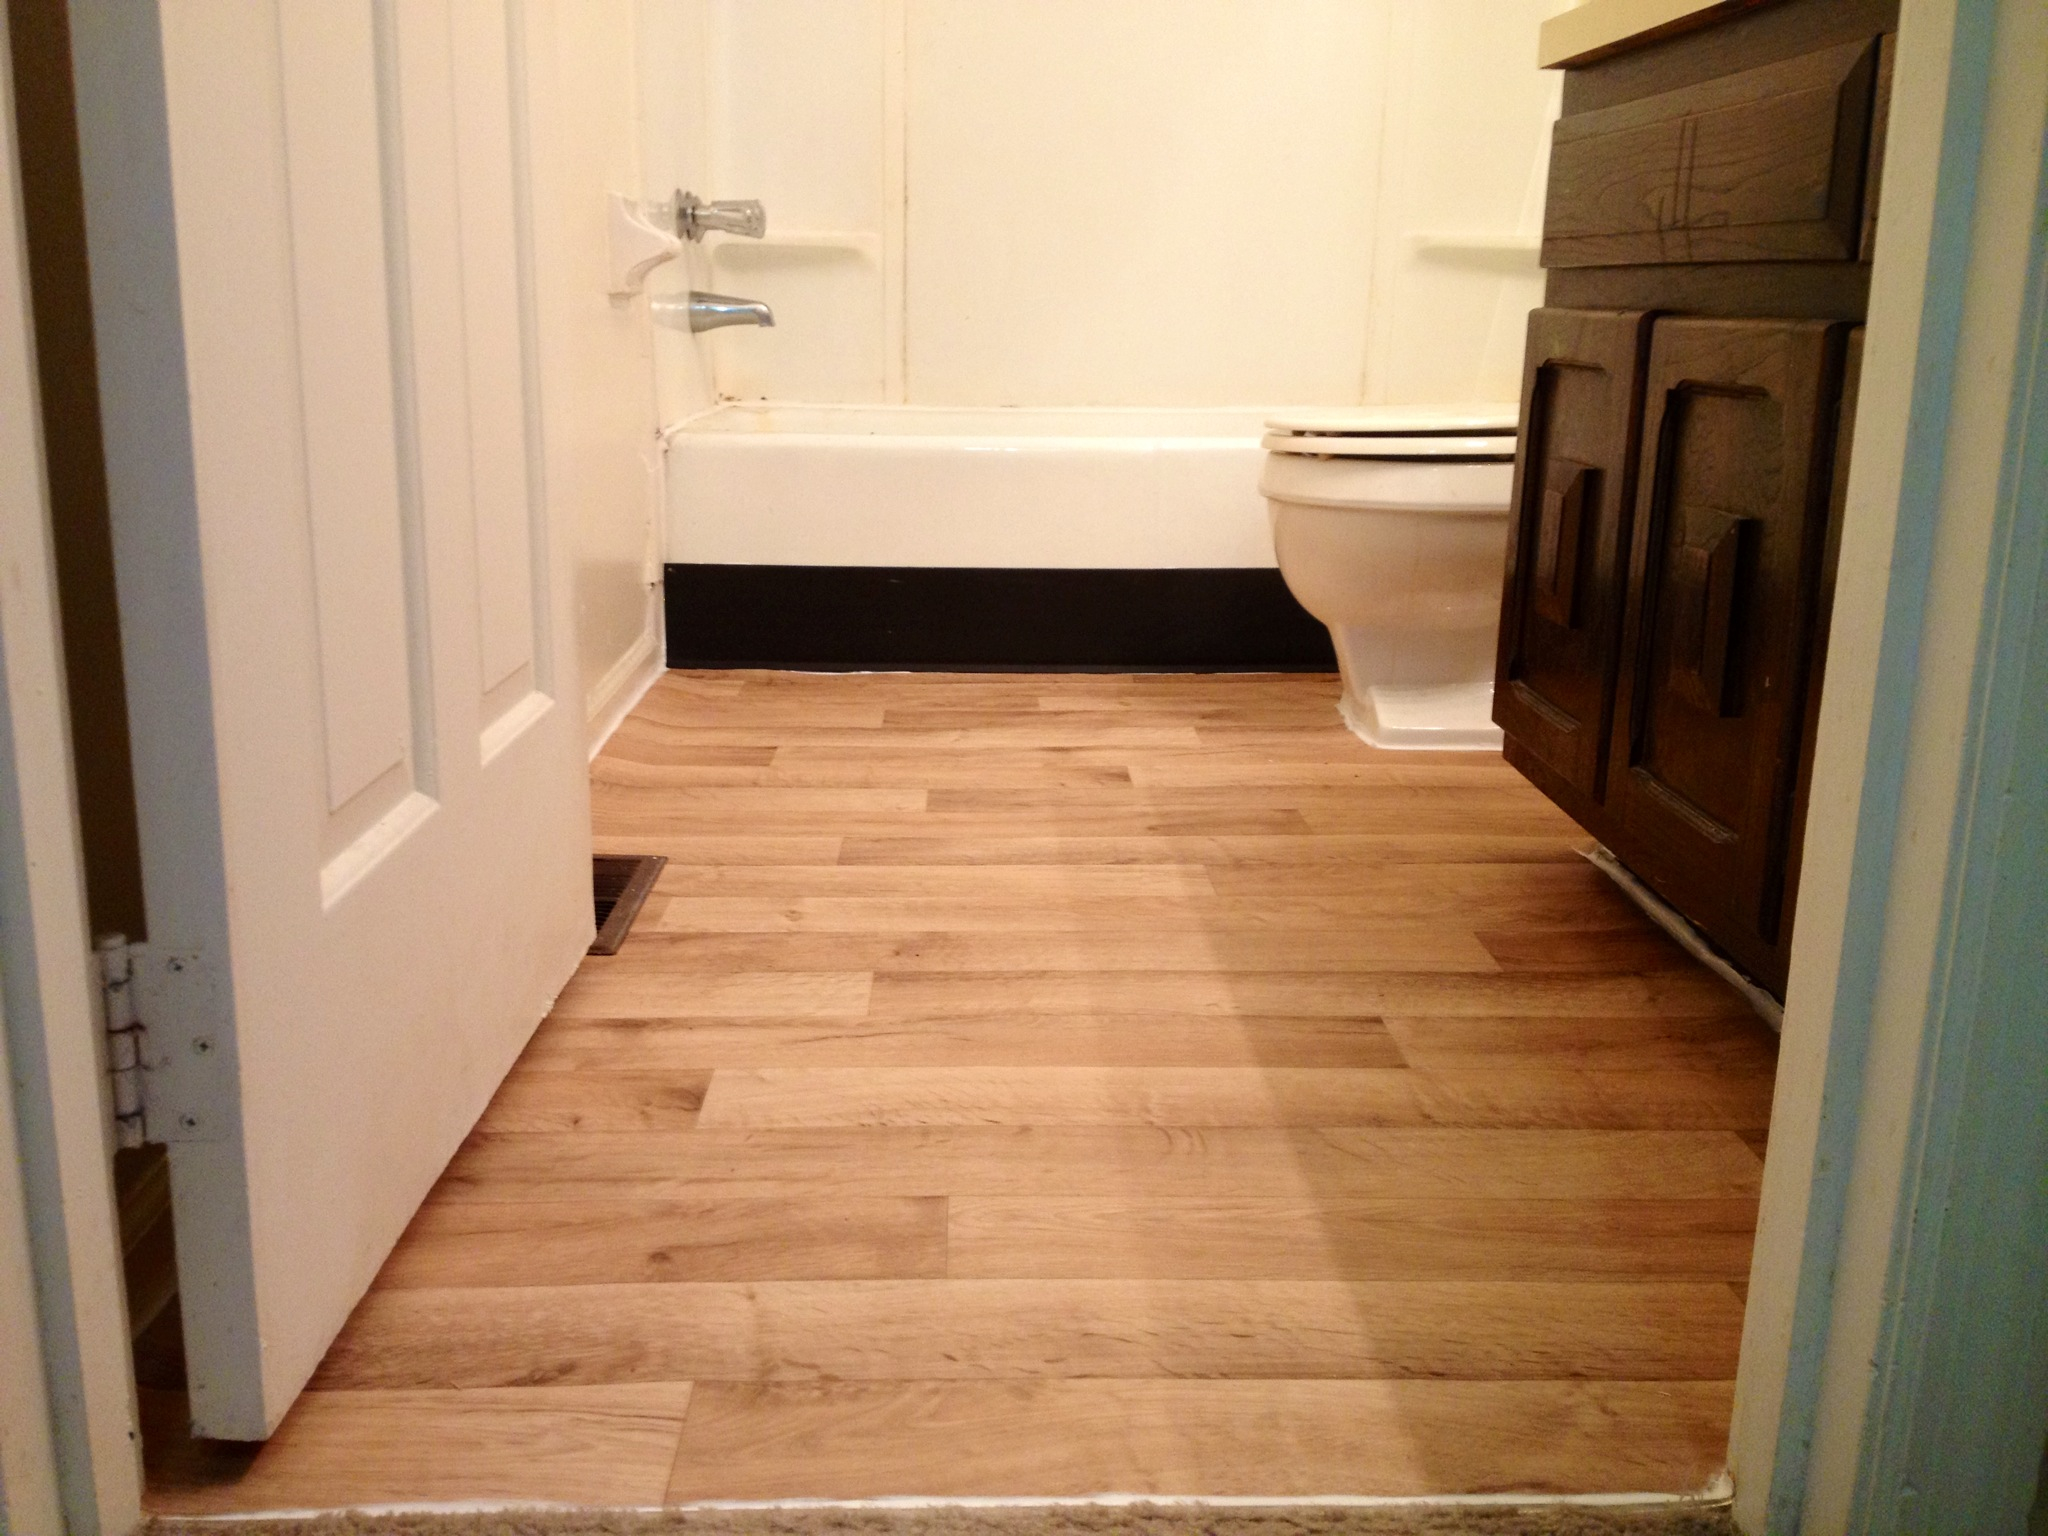 english-bathroom-floor-vinyl-before-amtico-flooring-1705017